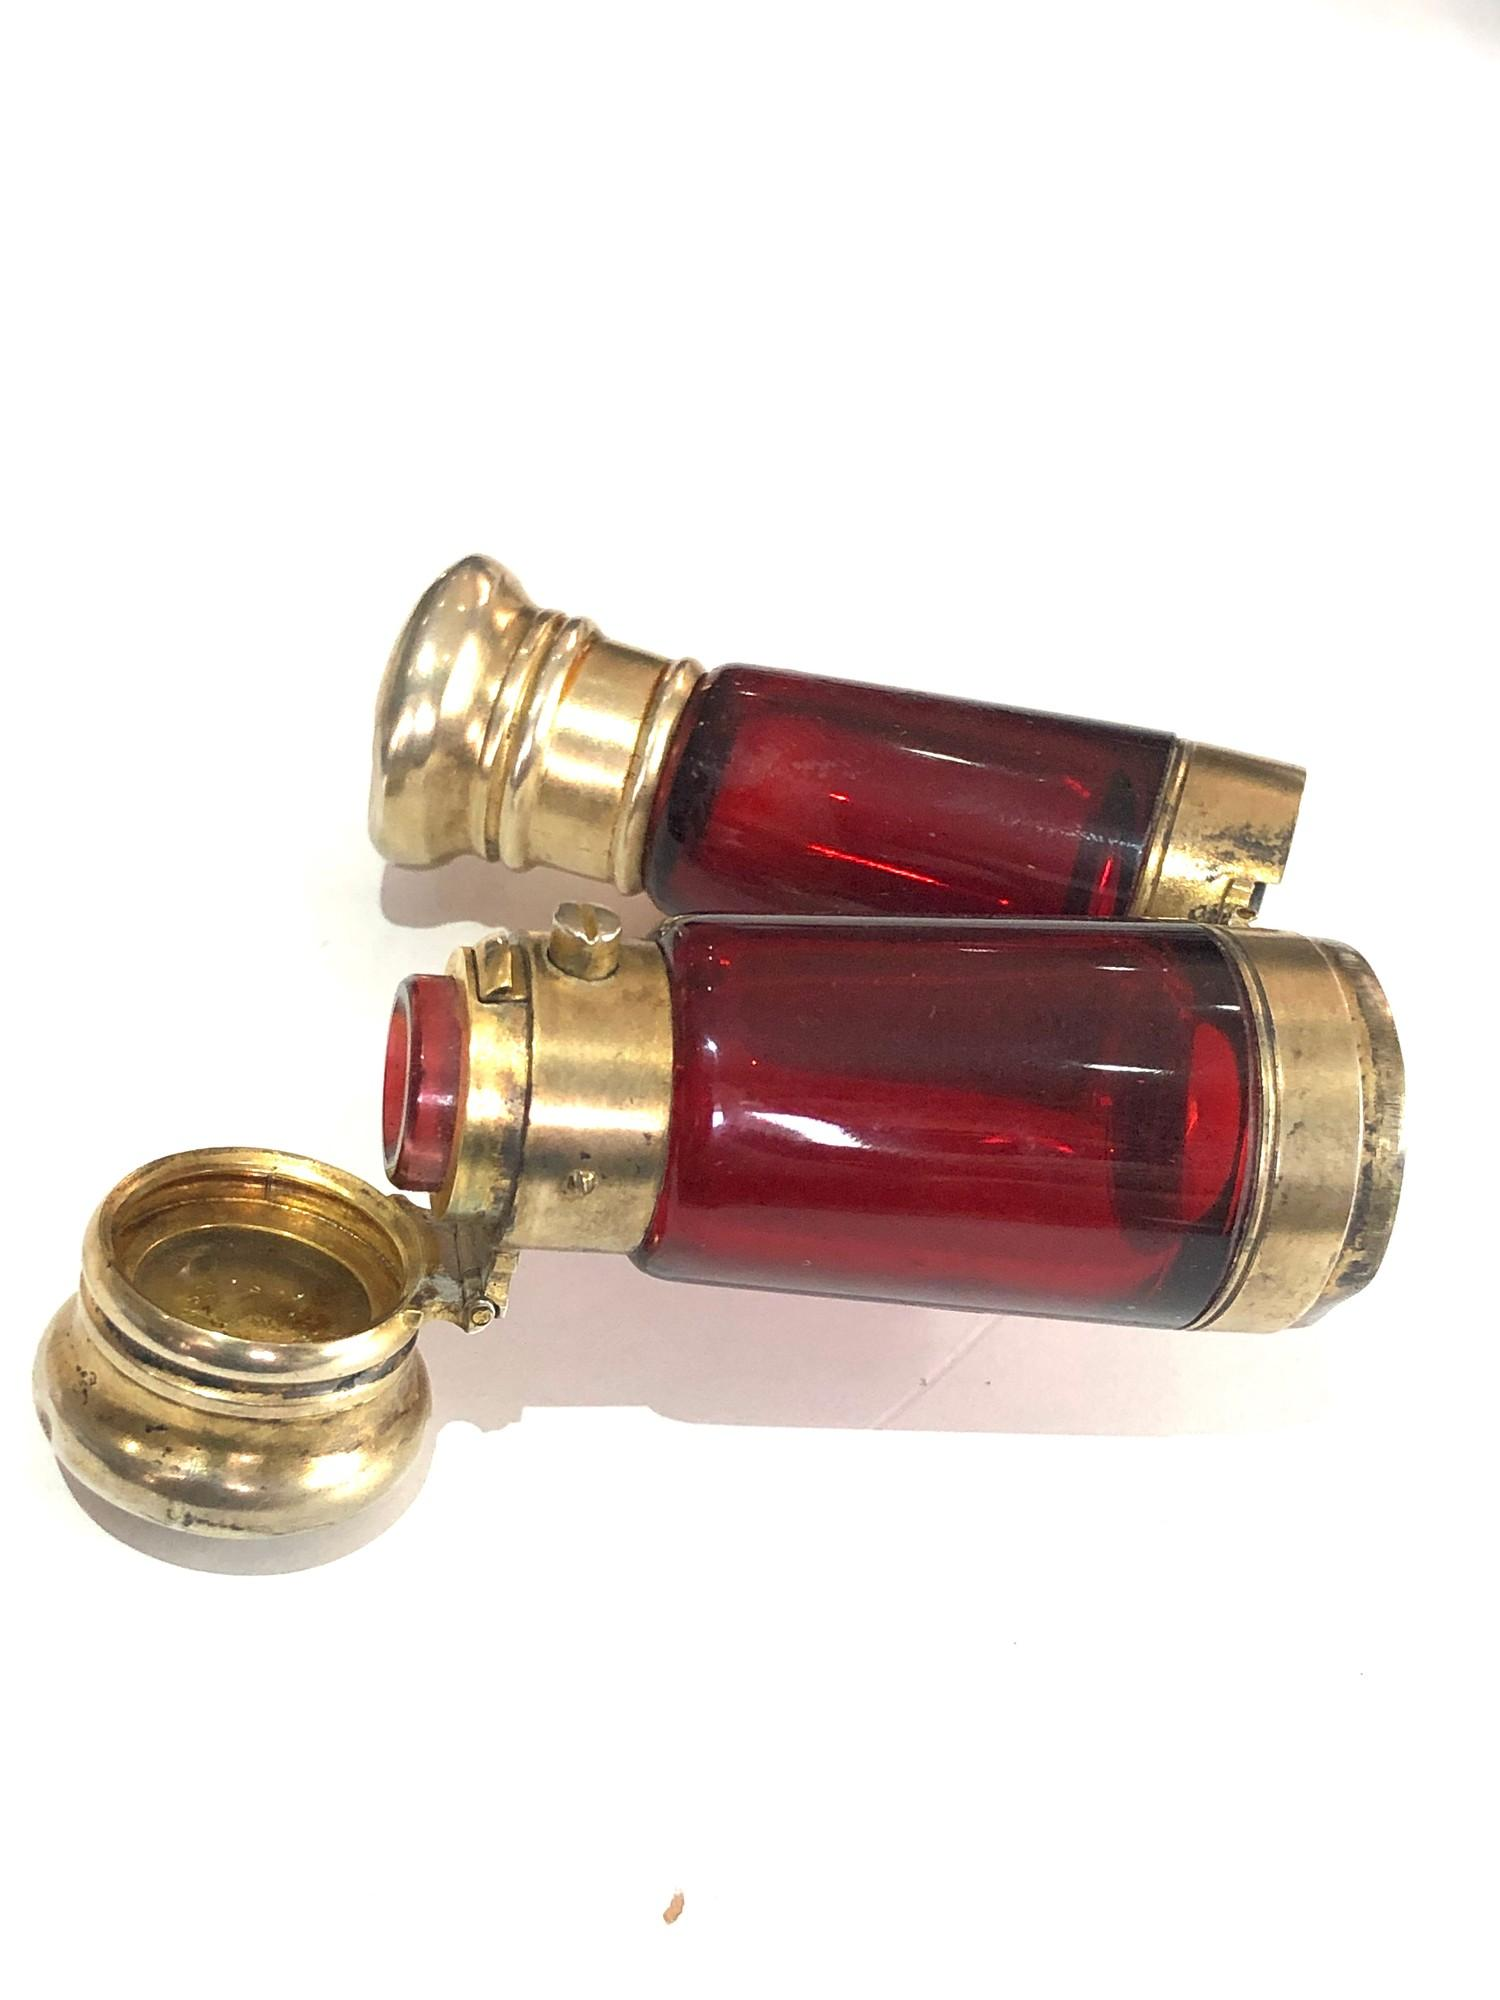 Rare antique ruby glass and silver mounted novelty binoculars scent bottle in original box by Maw - Image 3 of 11